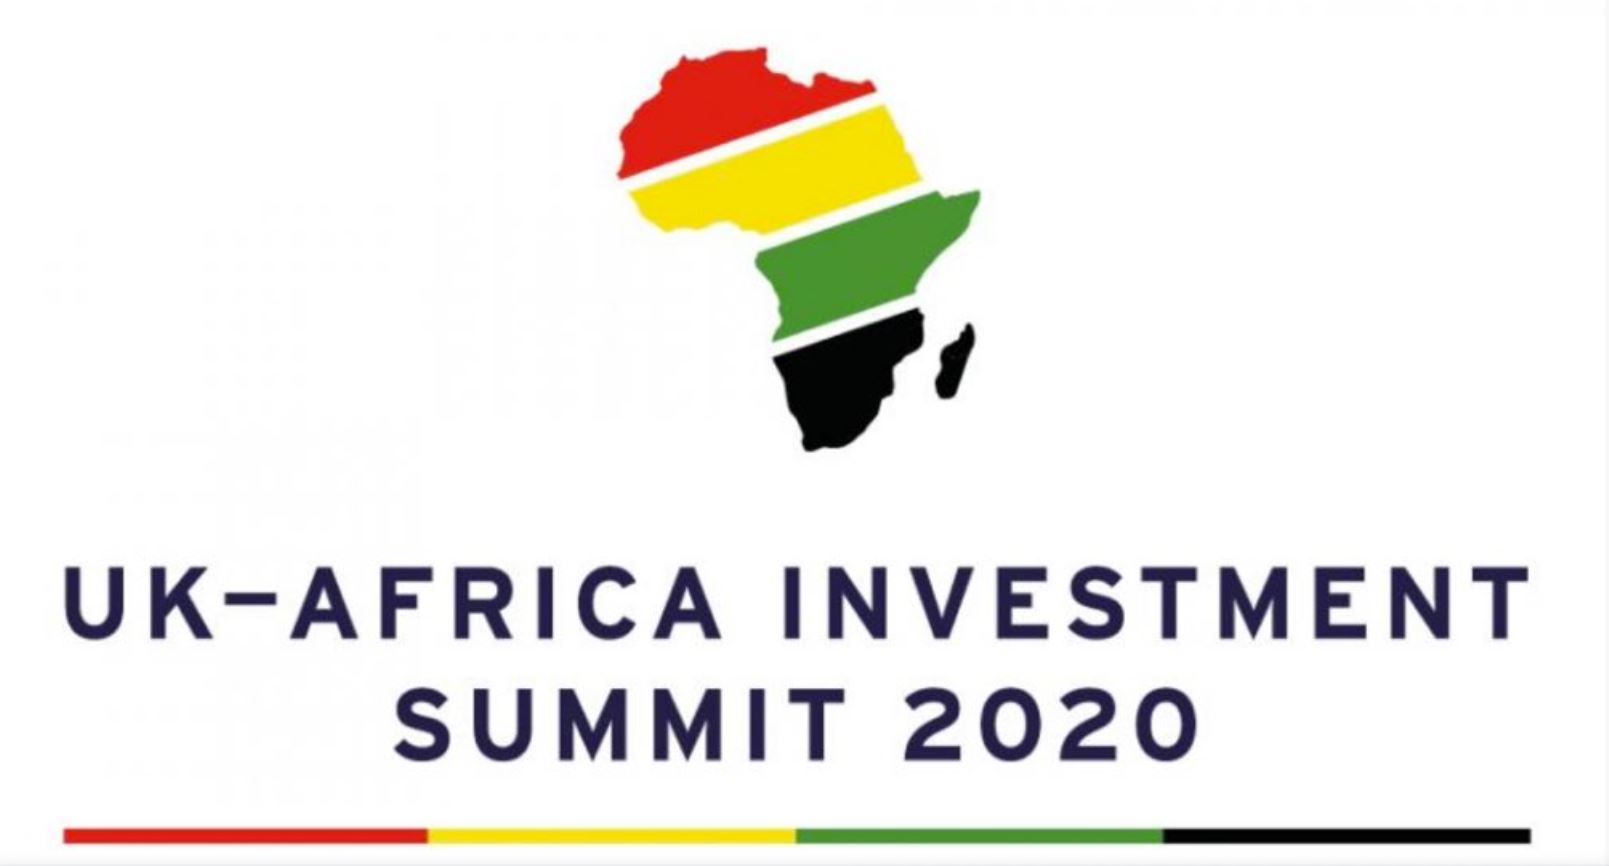 Africa summit on investment